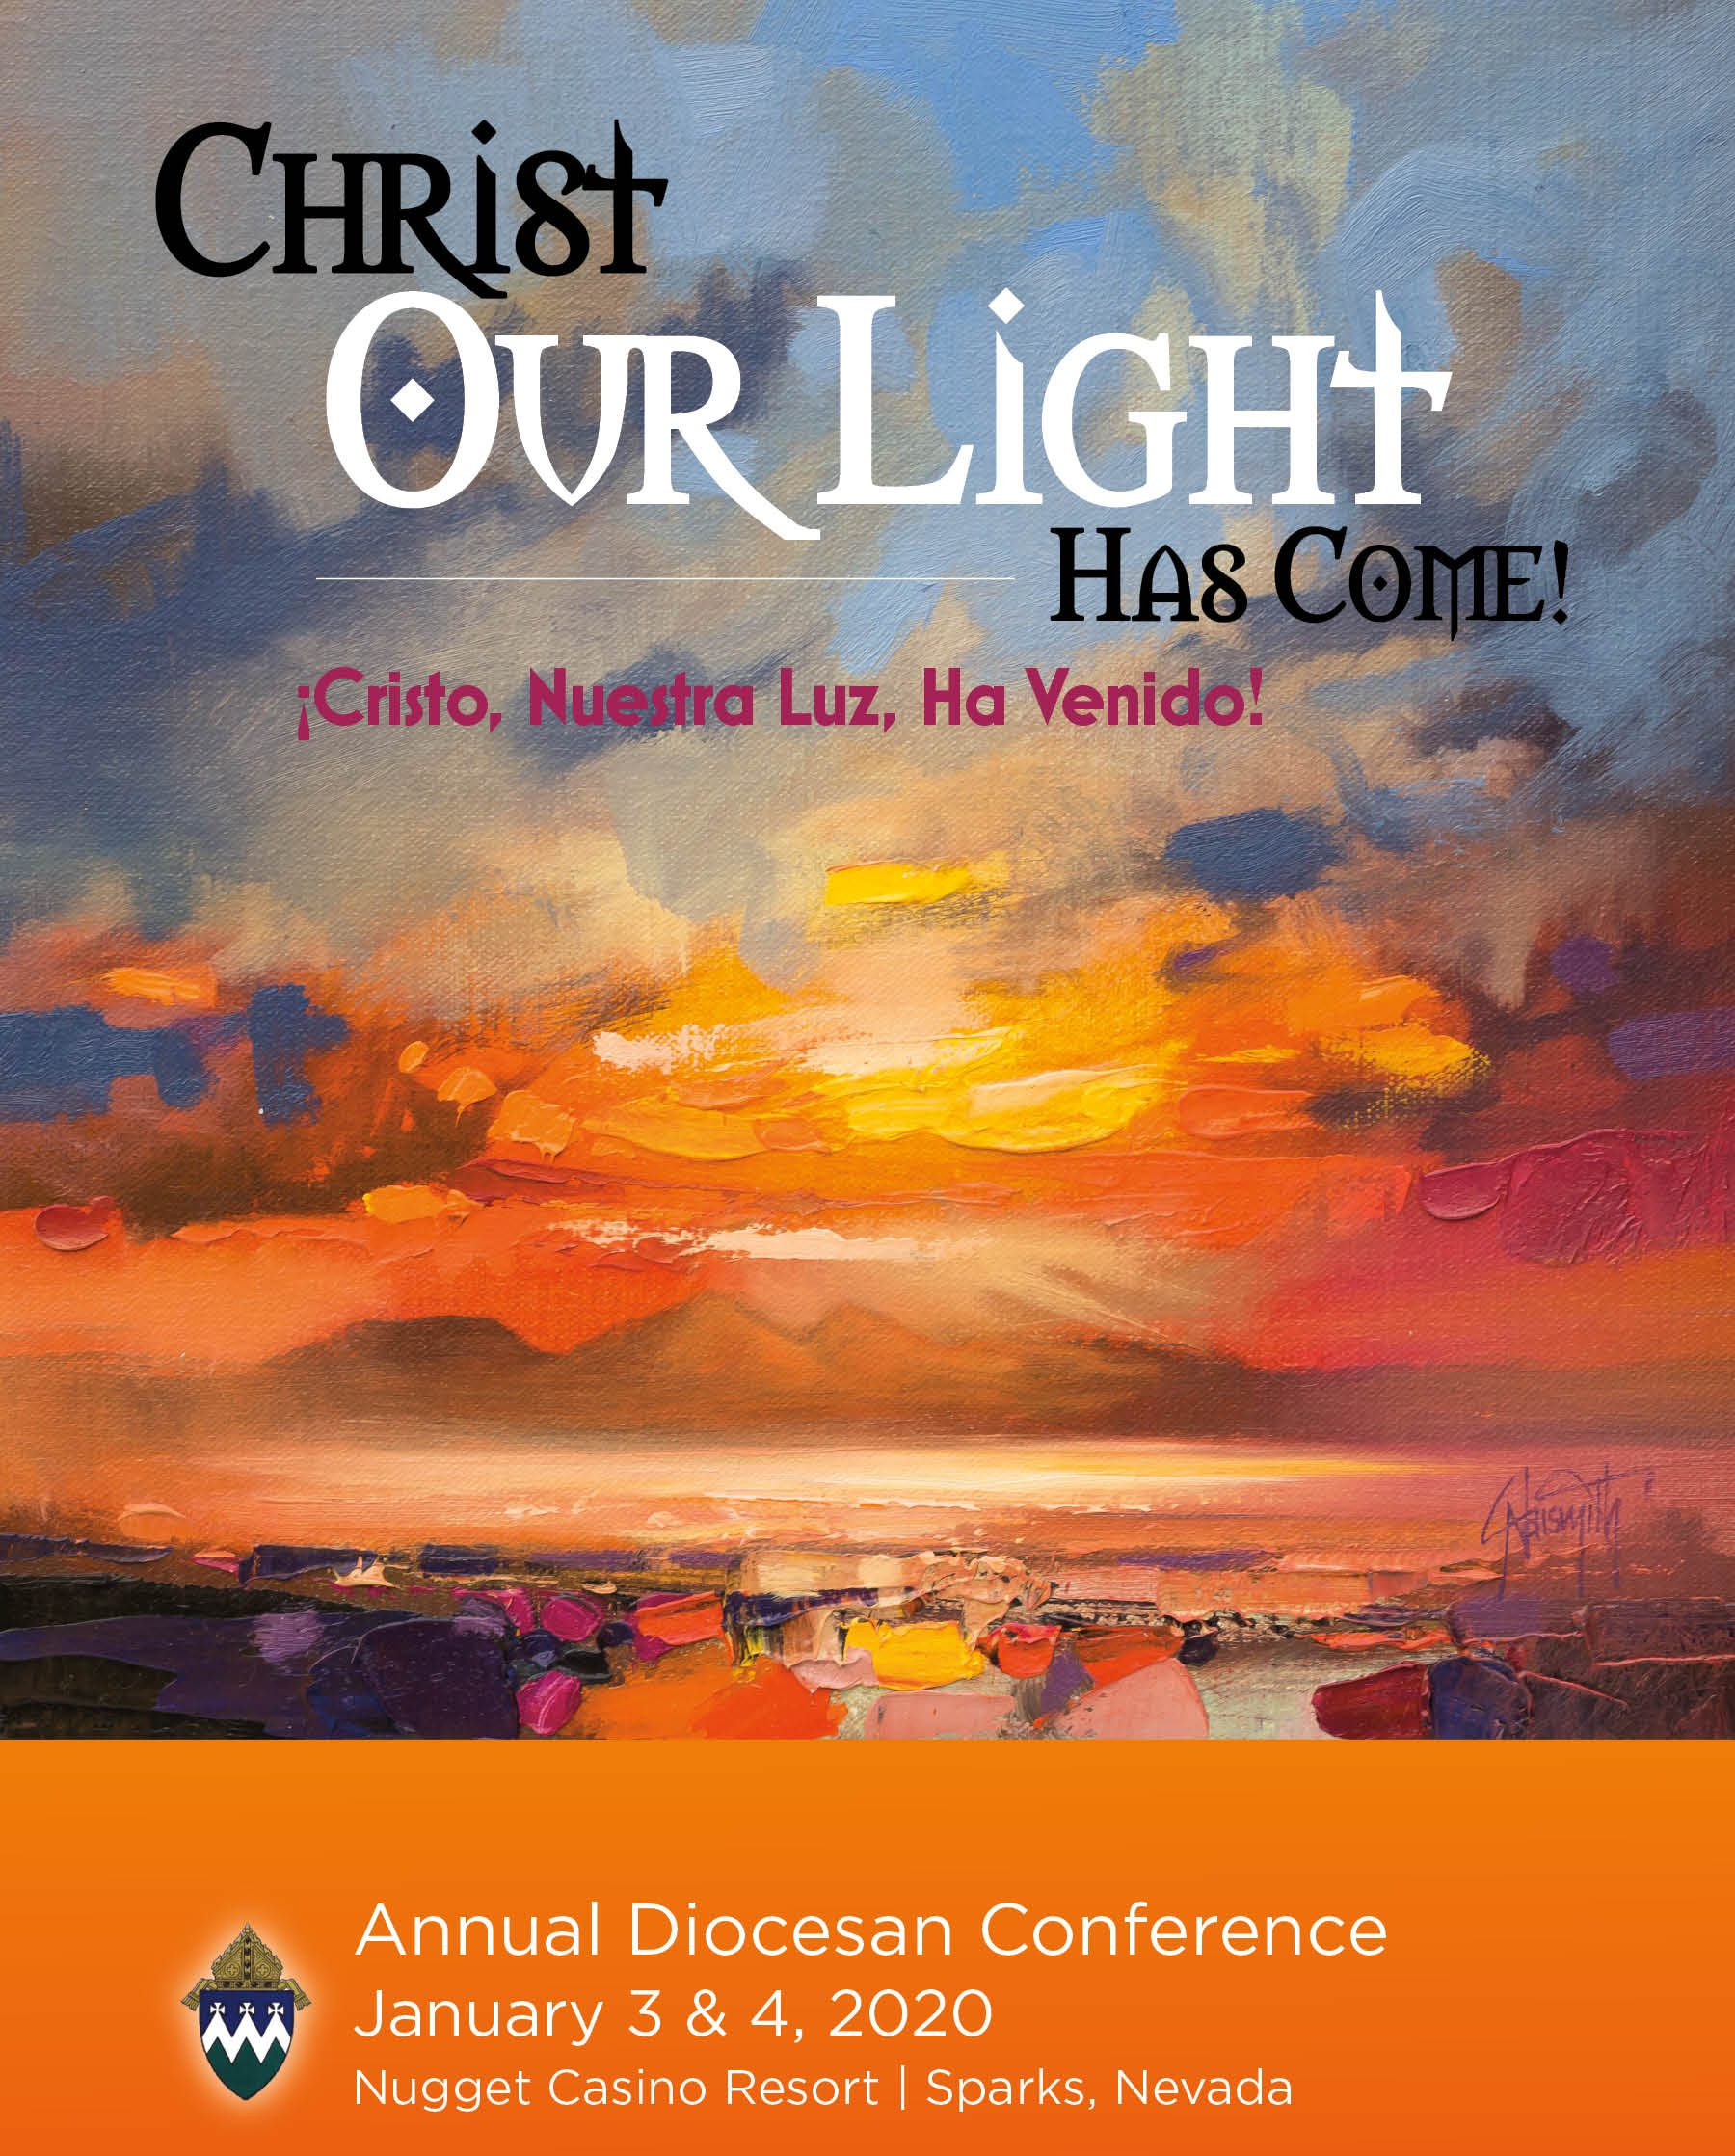 Diocese of Reno Annual Conference